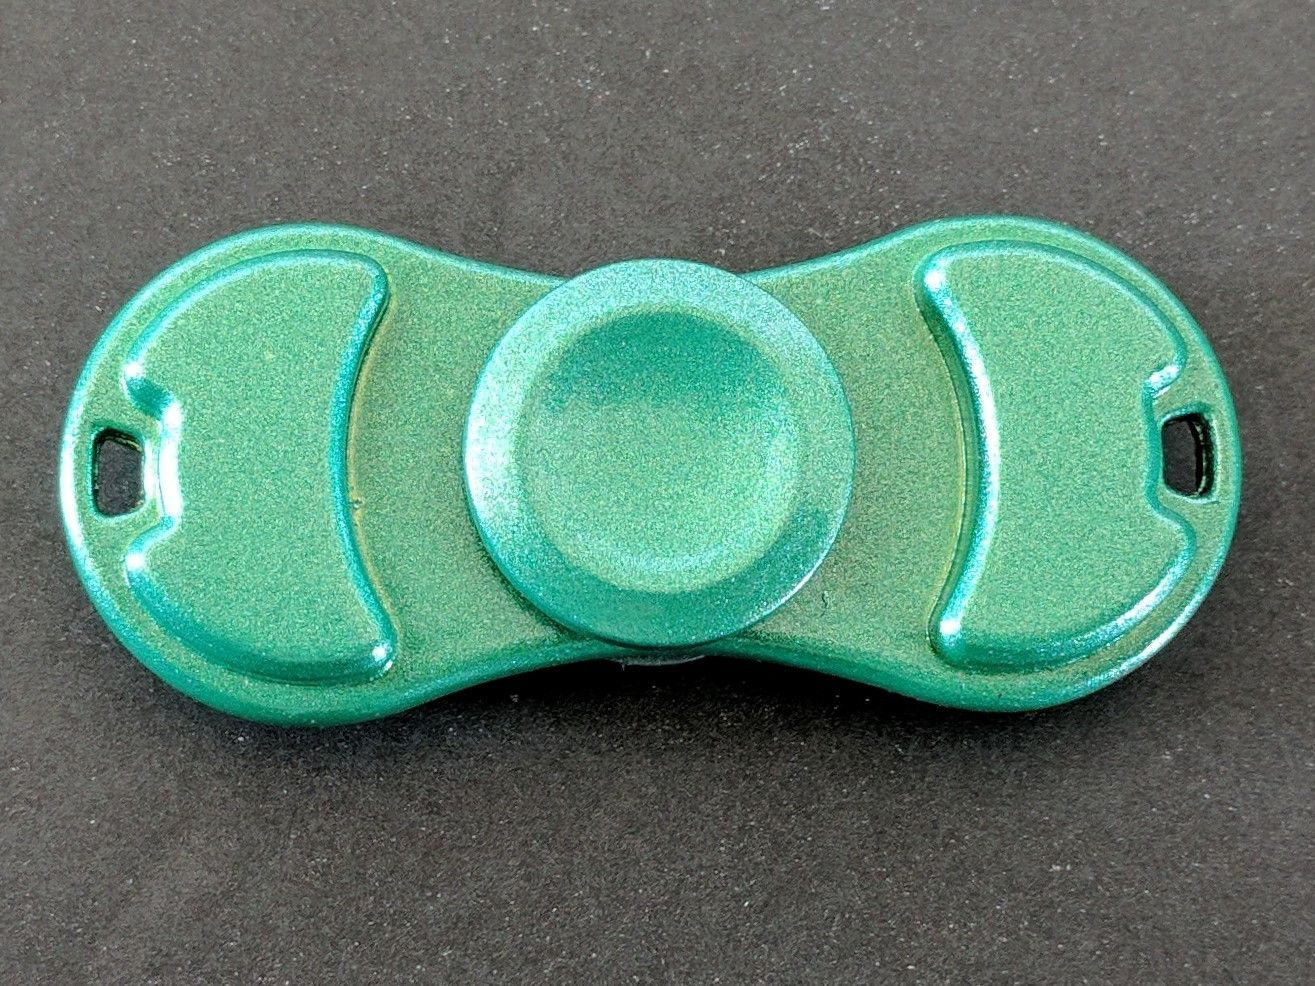 Sy tools custom producing hand spinner torqbar alec bass shells 50 66 - Color Coated Zinc Alloy Torque Bar Spinner Fidget Toy Beautifully Machine Made Color Coated Zinc Alloy